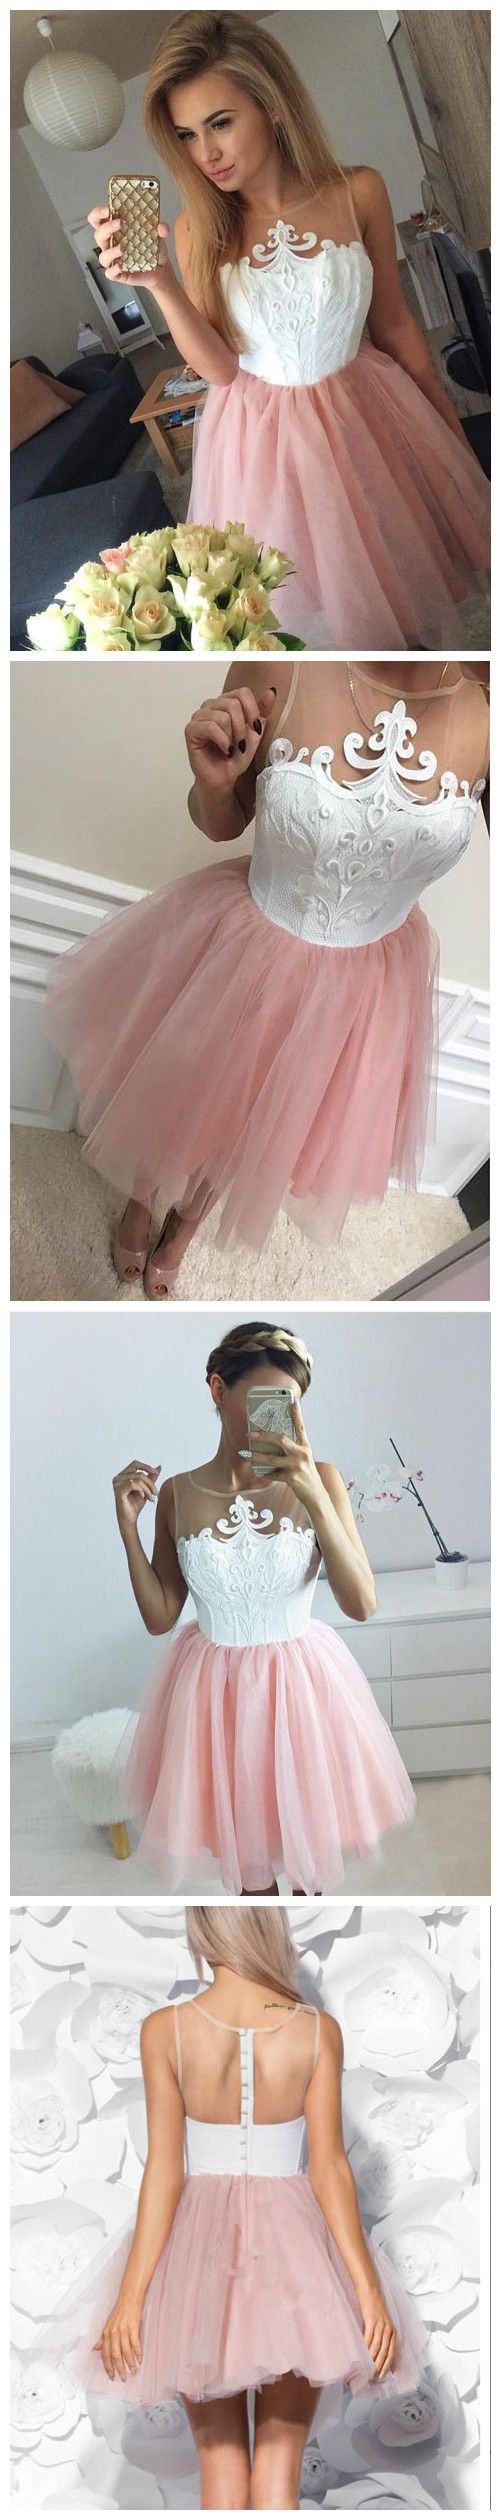 CHARMING HOMECOMING DRESS,NEW ARRIVAL Pink A-LINE HOMECOMING DRESS SHORT/MINI PROM DRSESS JUNIORS HOMECOMING DRESSES CUSTOM MADE FORMAL DRESS PROM GOWNS